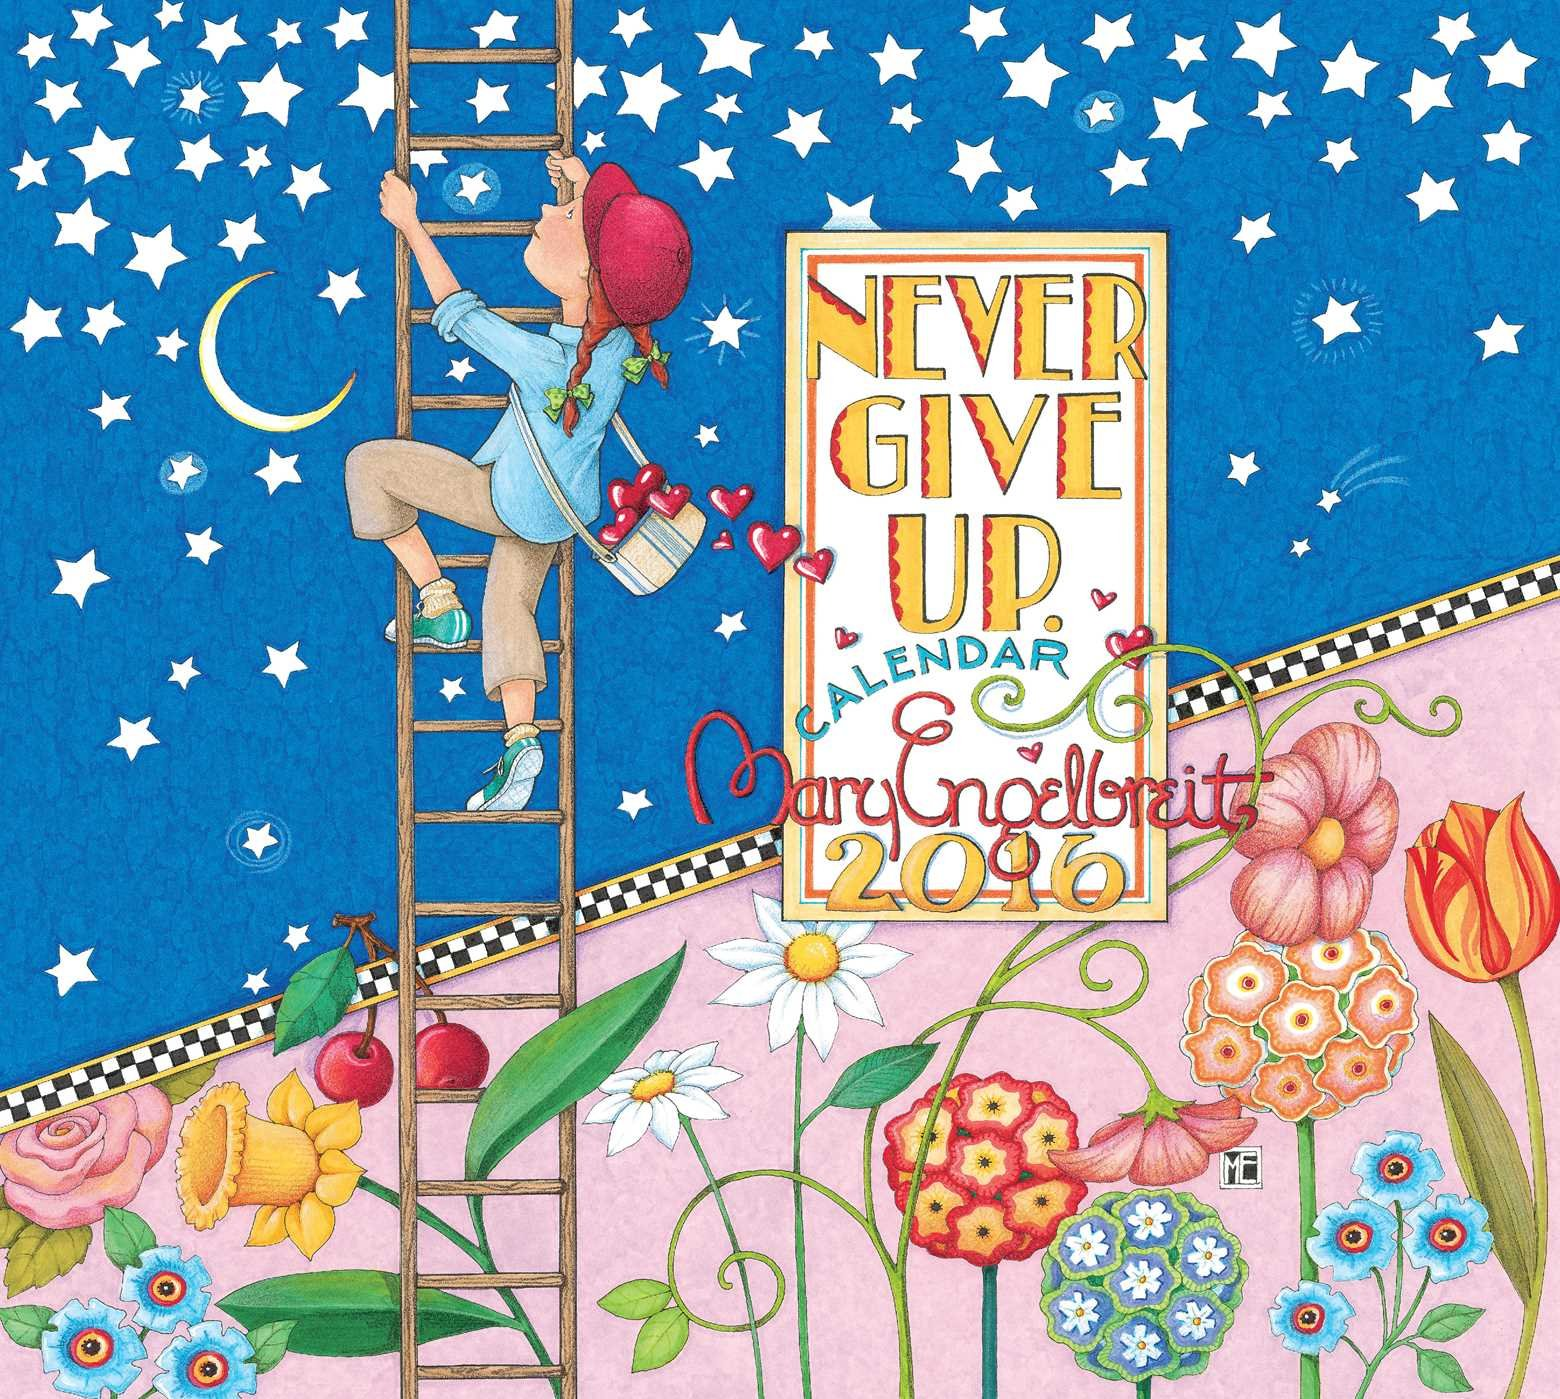 Mary engelbreit 2016 deluxe wall calendar never give up mary mary engelbreit 2016 deluxe wall calendar never give up mary engelbreit 9781449461584 amazon books bookmarktalkfo Image collections